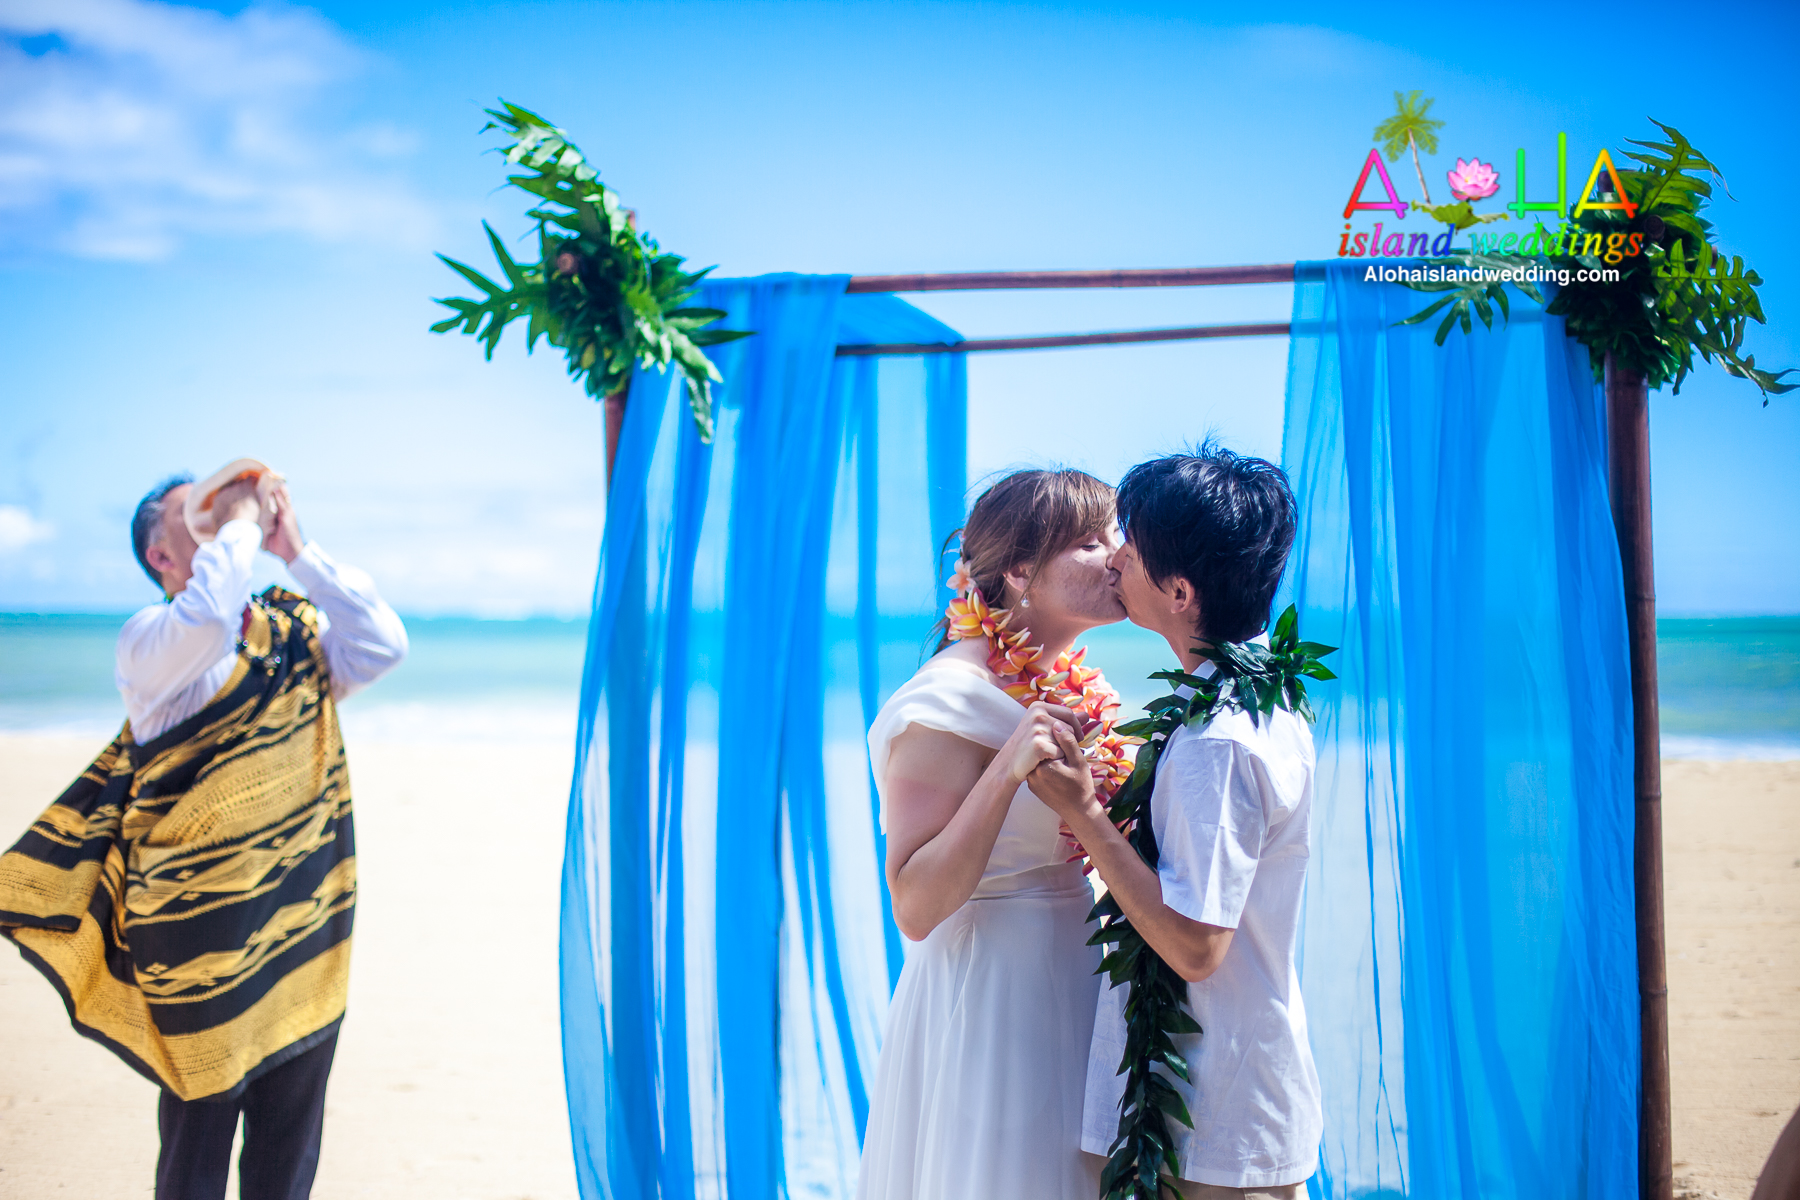 kissing under thier Hawaii wedding archway of sky blue theme while the minister blows the conch shell